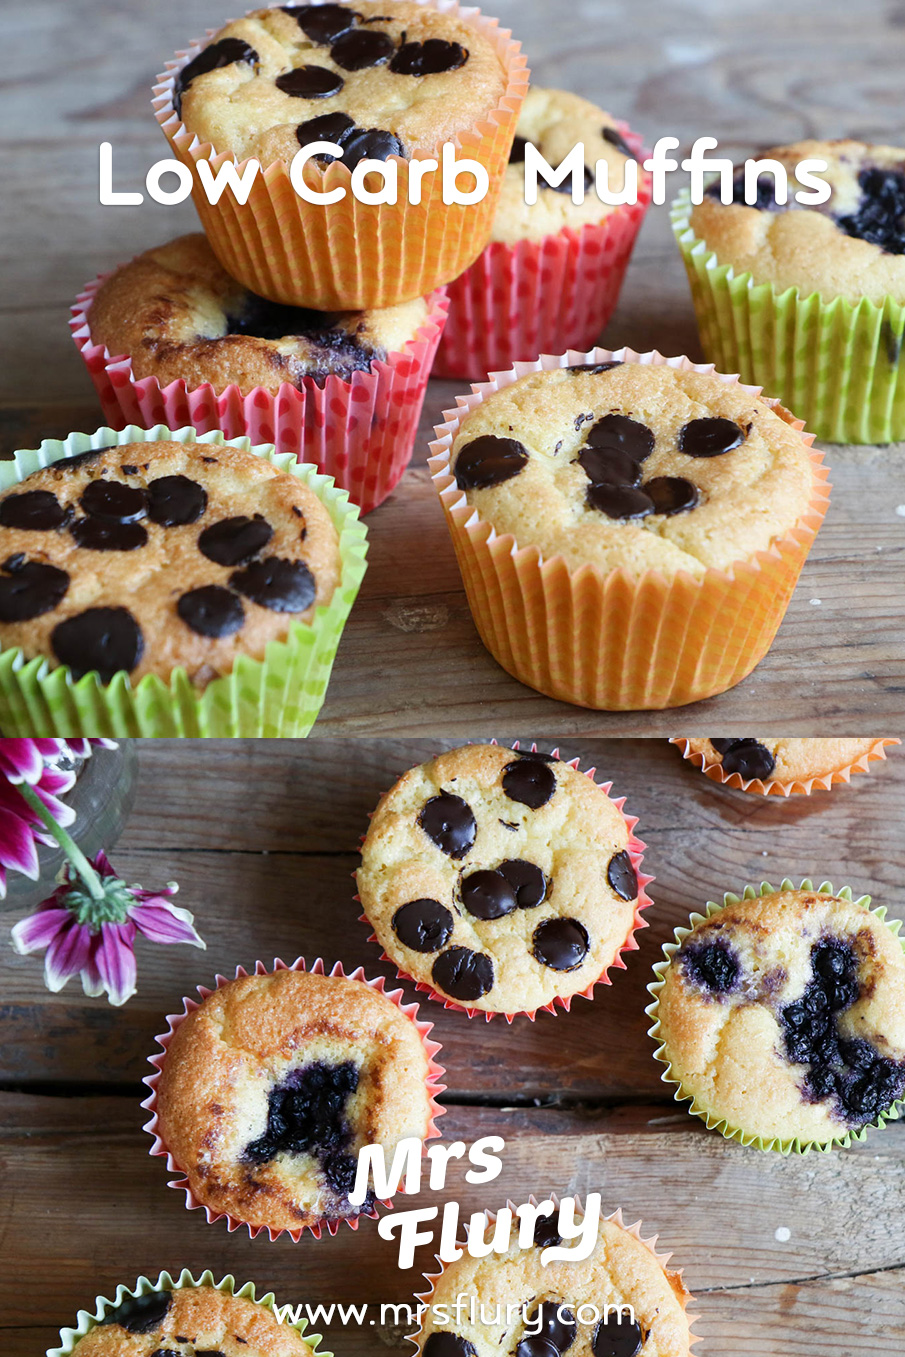 Low Carb Muffins Rezept Mrs Flury